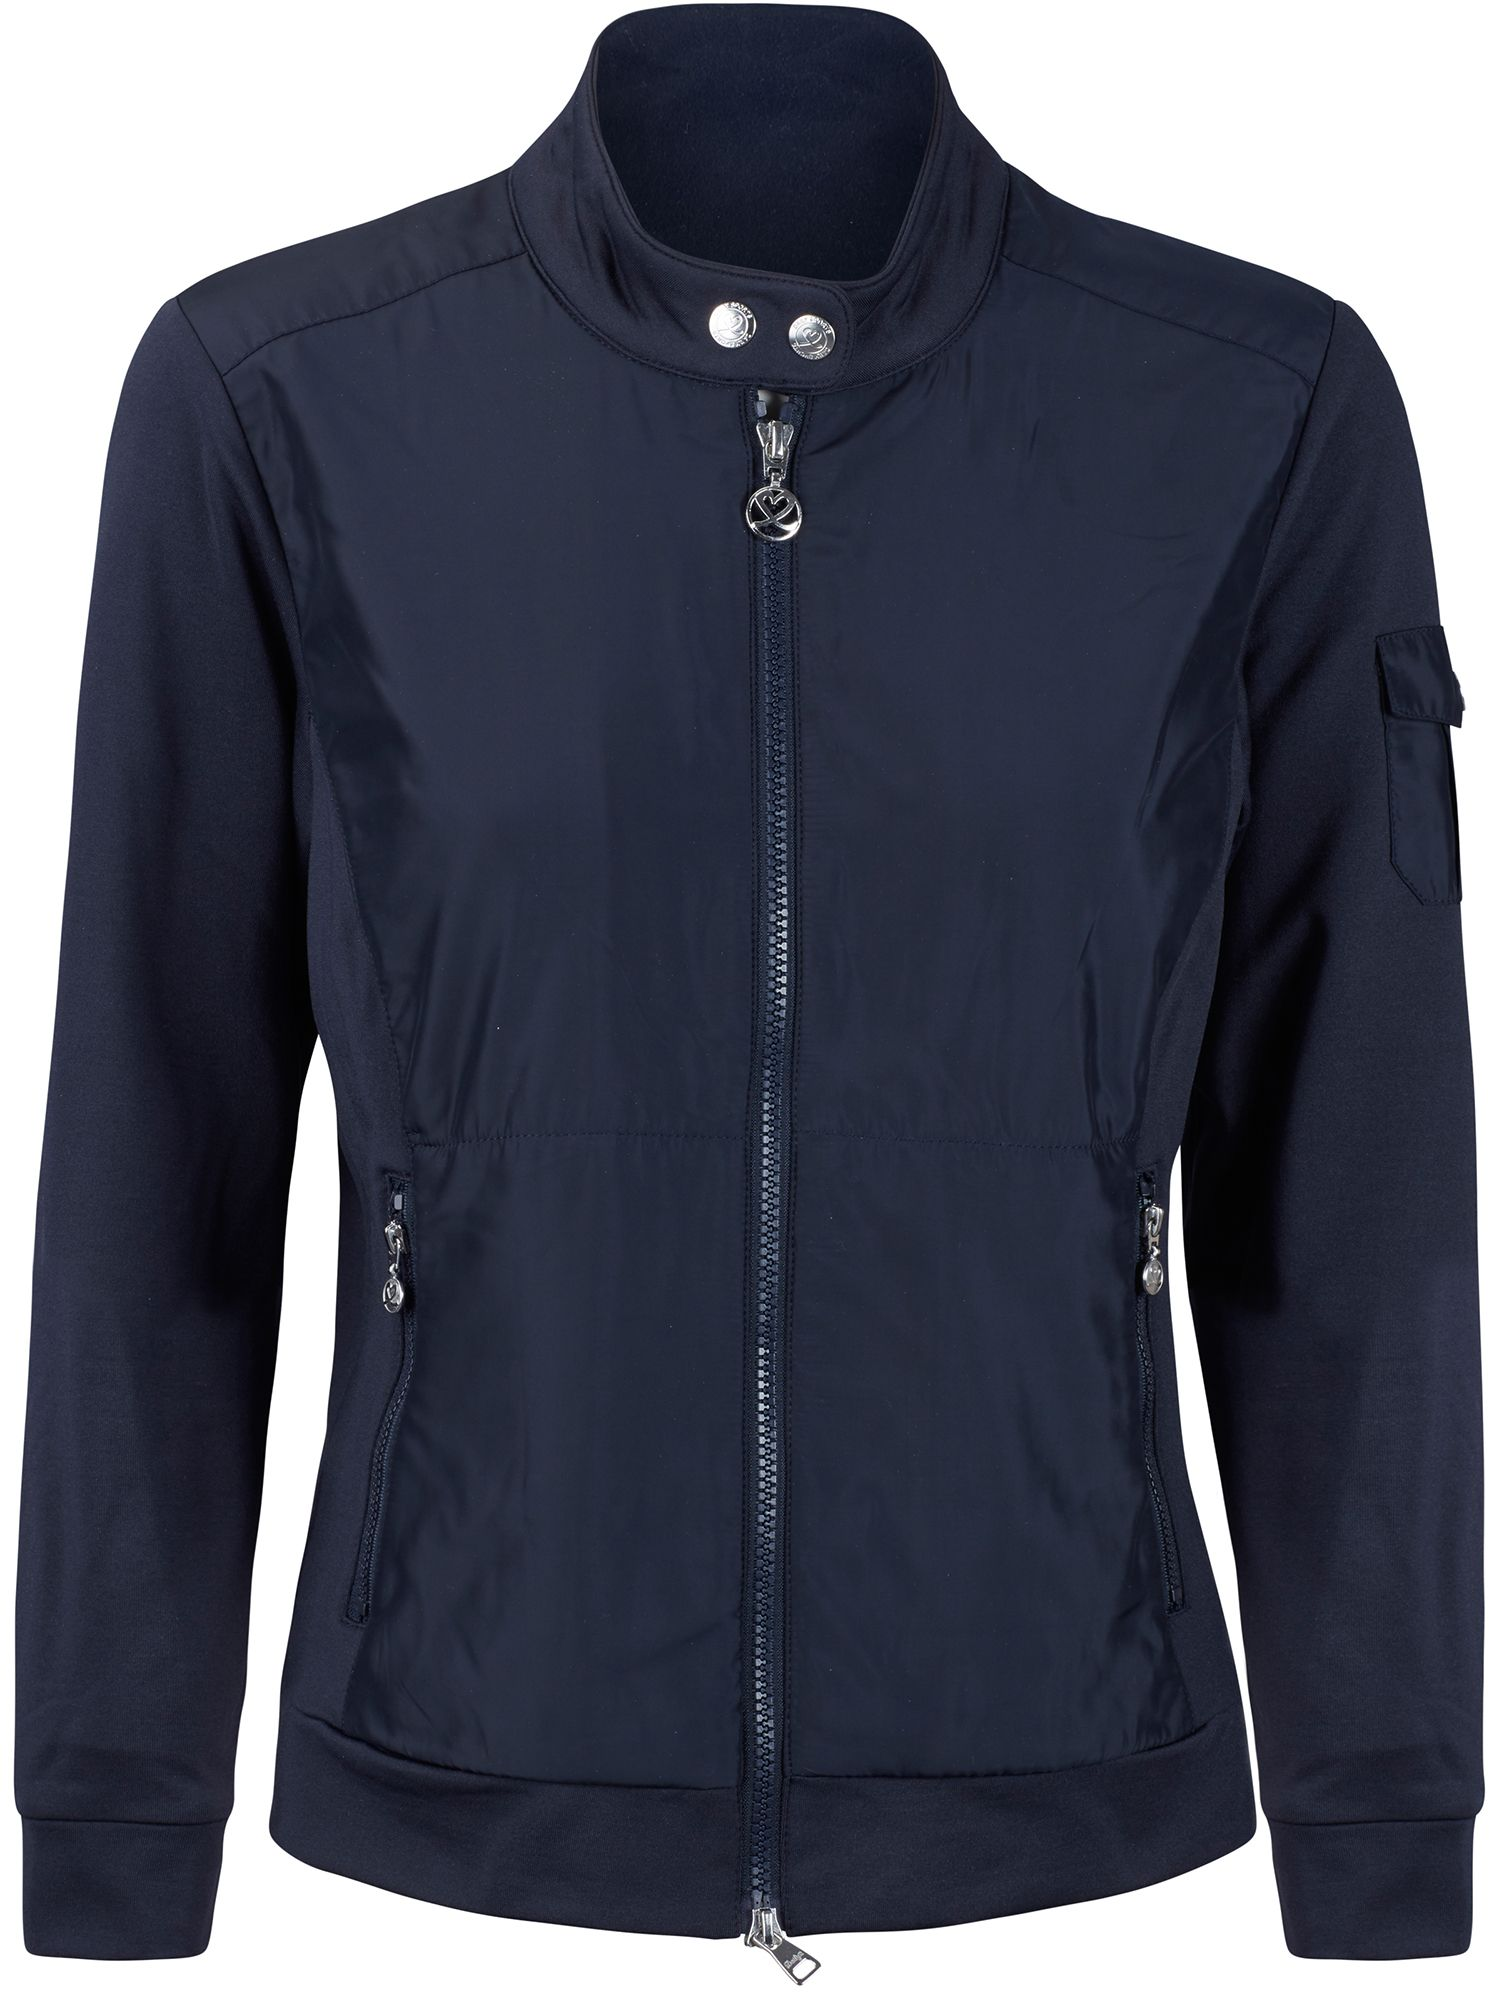 Daily Sports Break Jacket, Blue